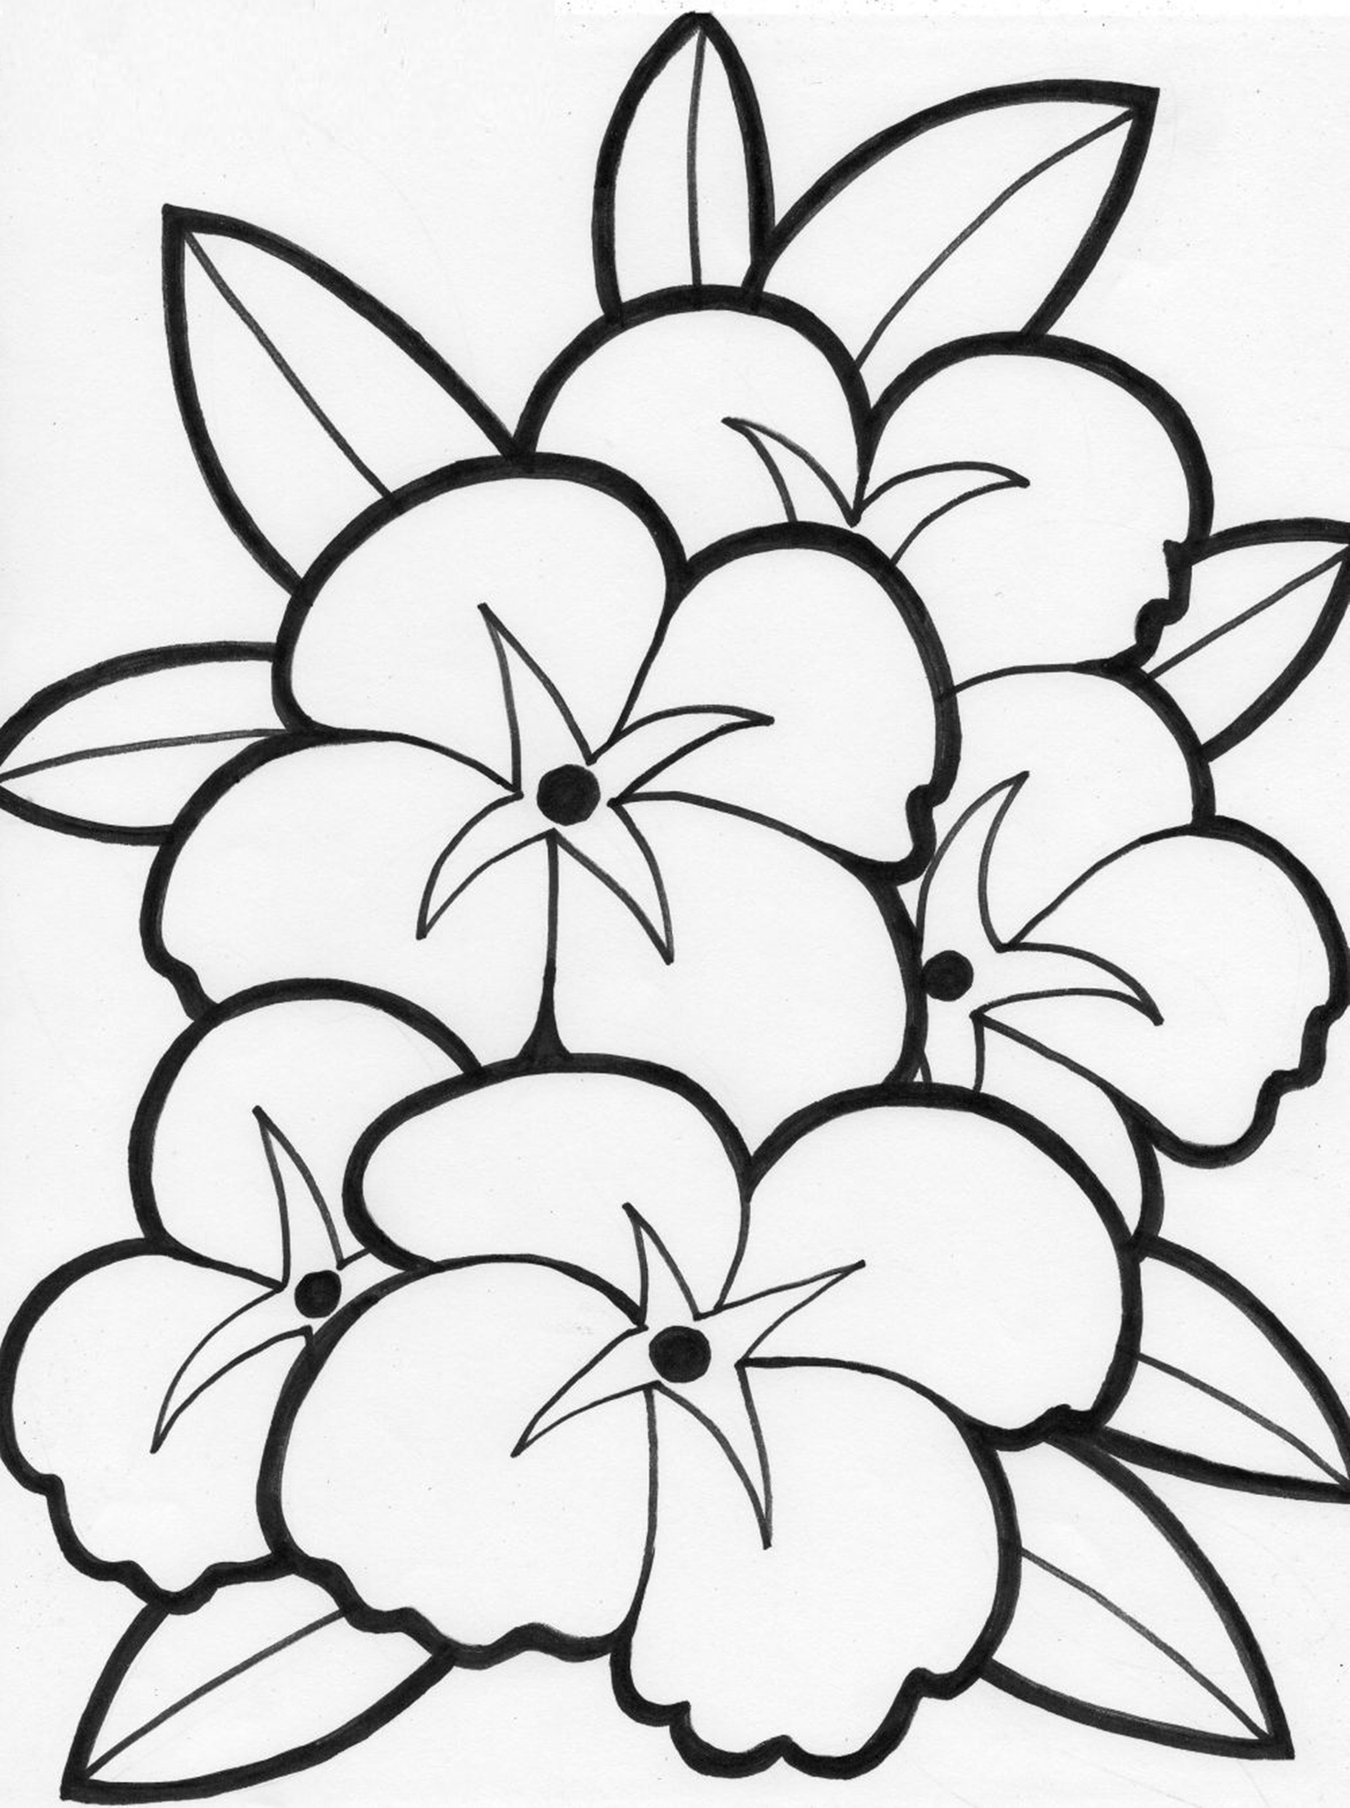 coloring pages of flowers free printable flower coloring pages for kids best pages coloring flowers of